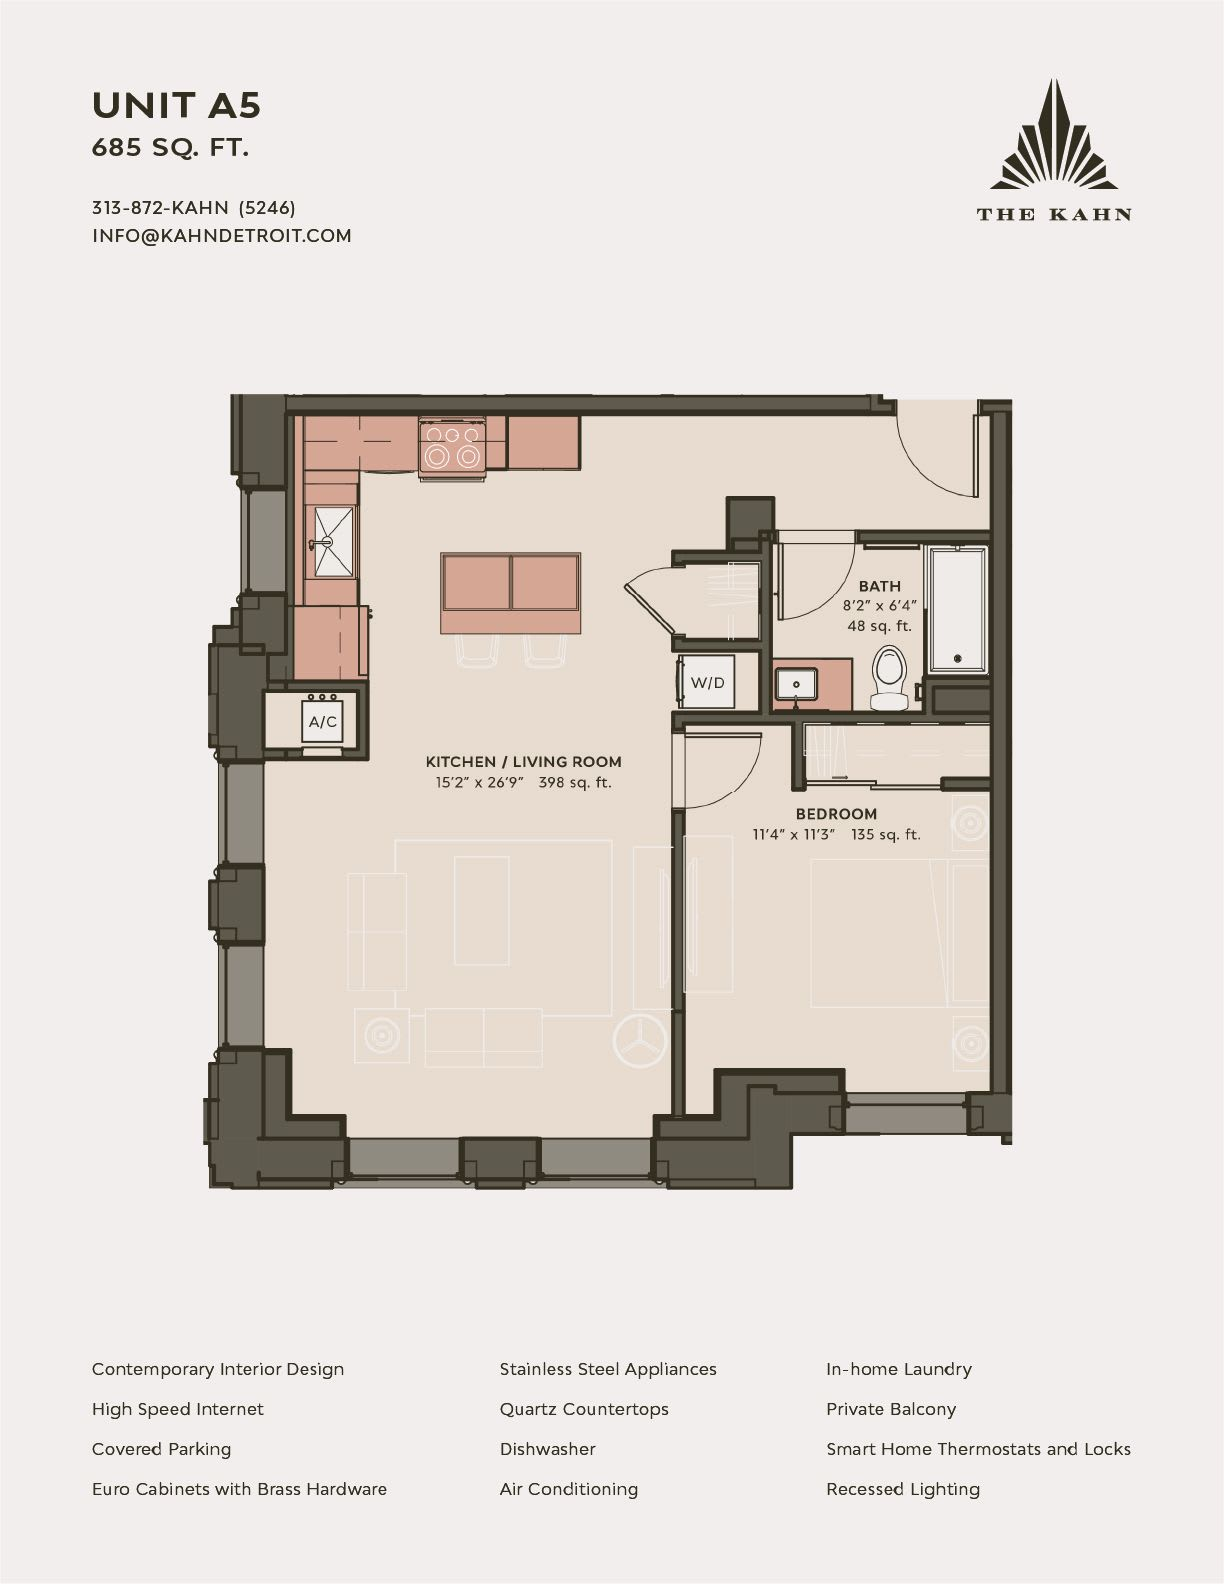 A5 floor plan image at The Kahn in Detroit, Michigan